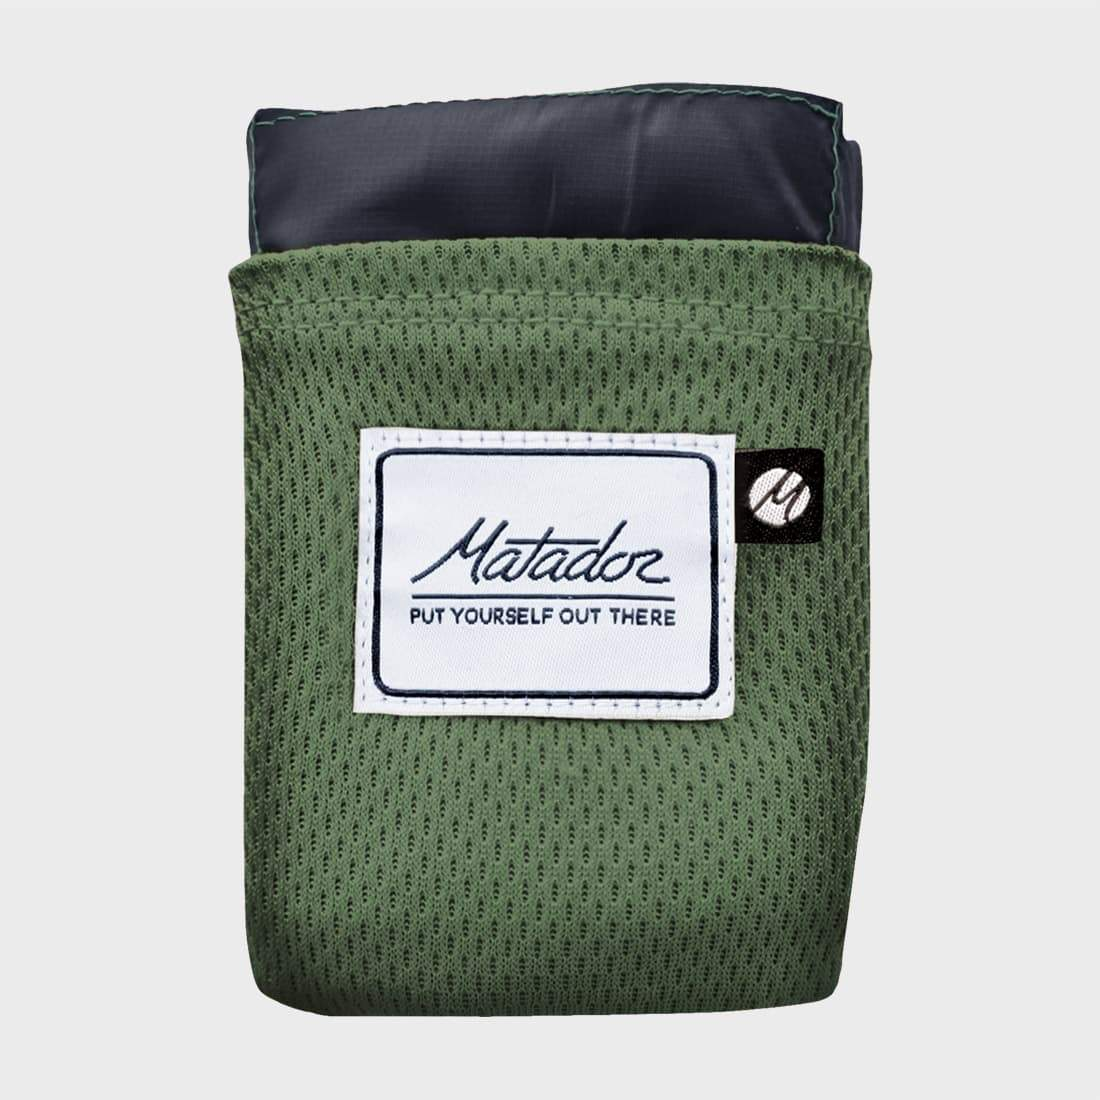 Matador Pocket Blanket (V.2) Alpine Green